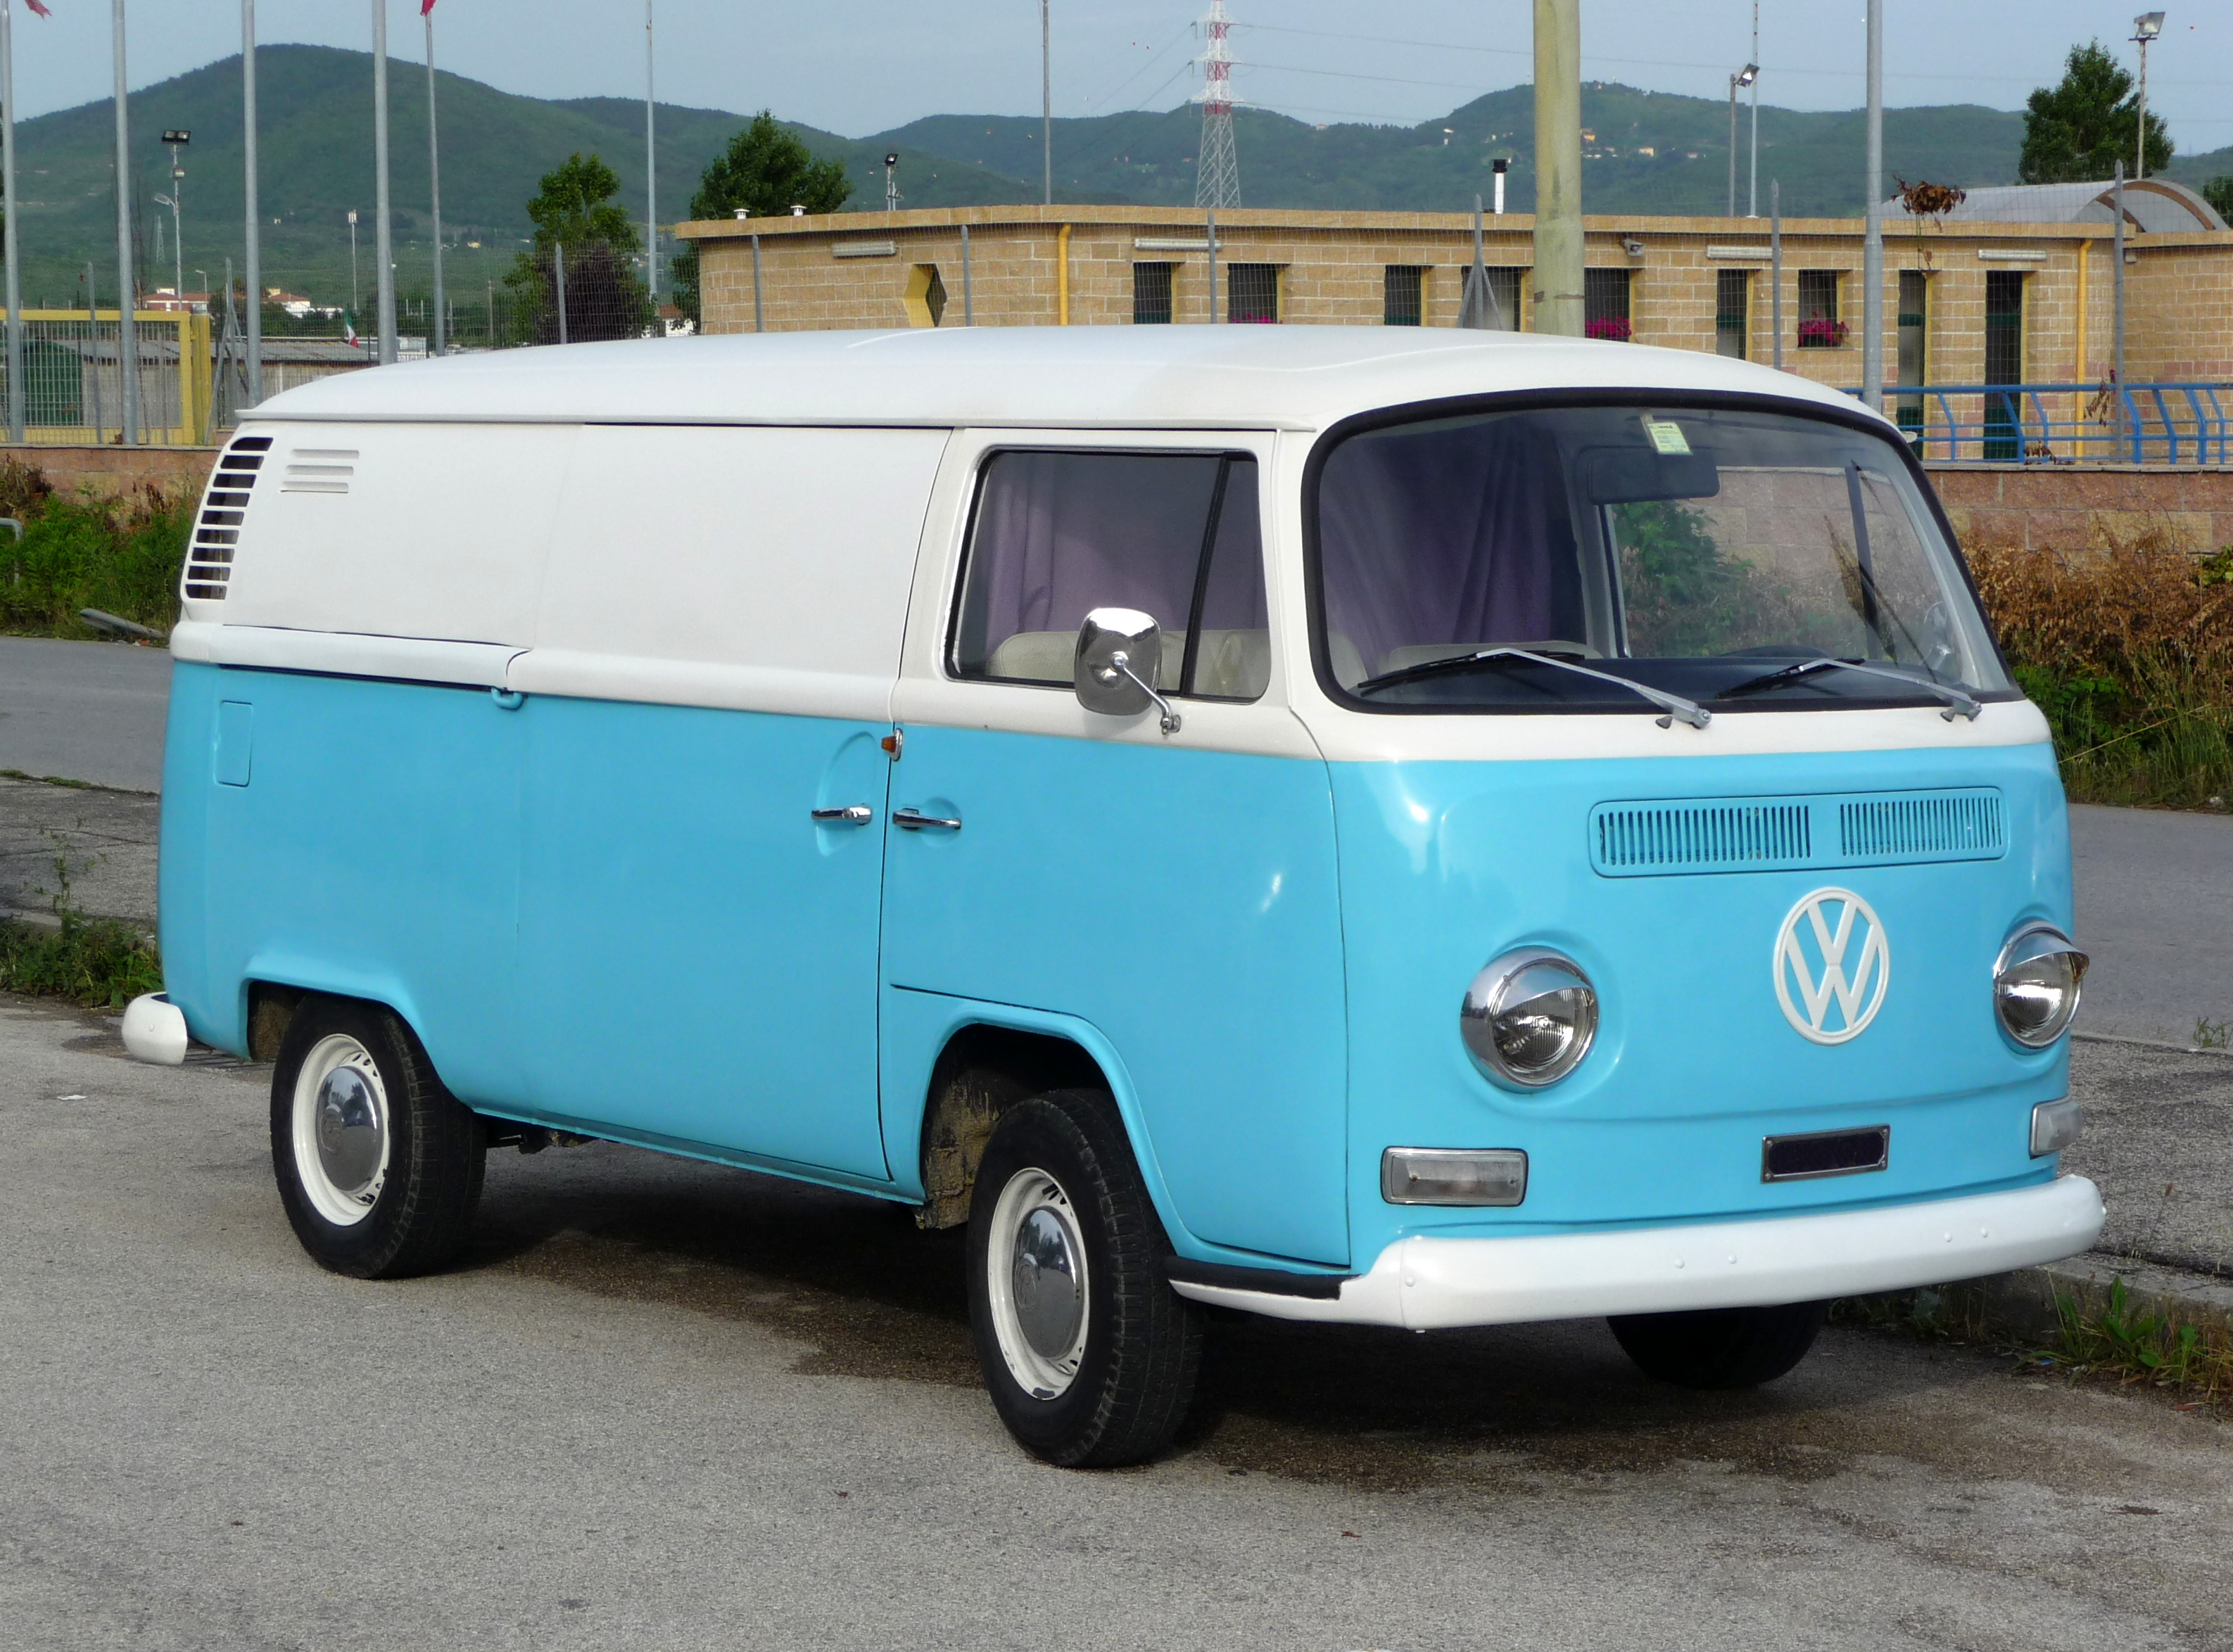 Volkswagen T2 Photos Photogallery With 11 Pics Carsbase Com